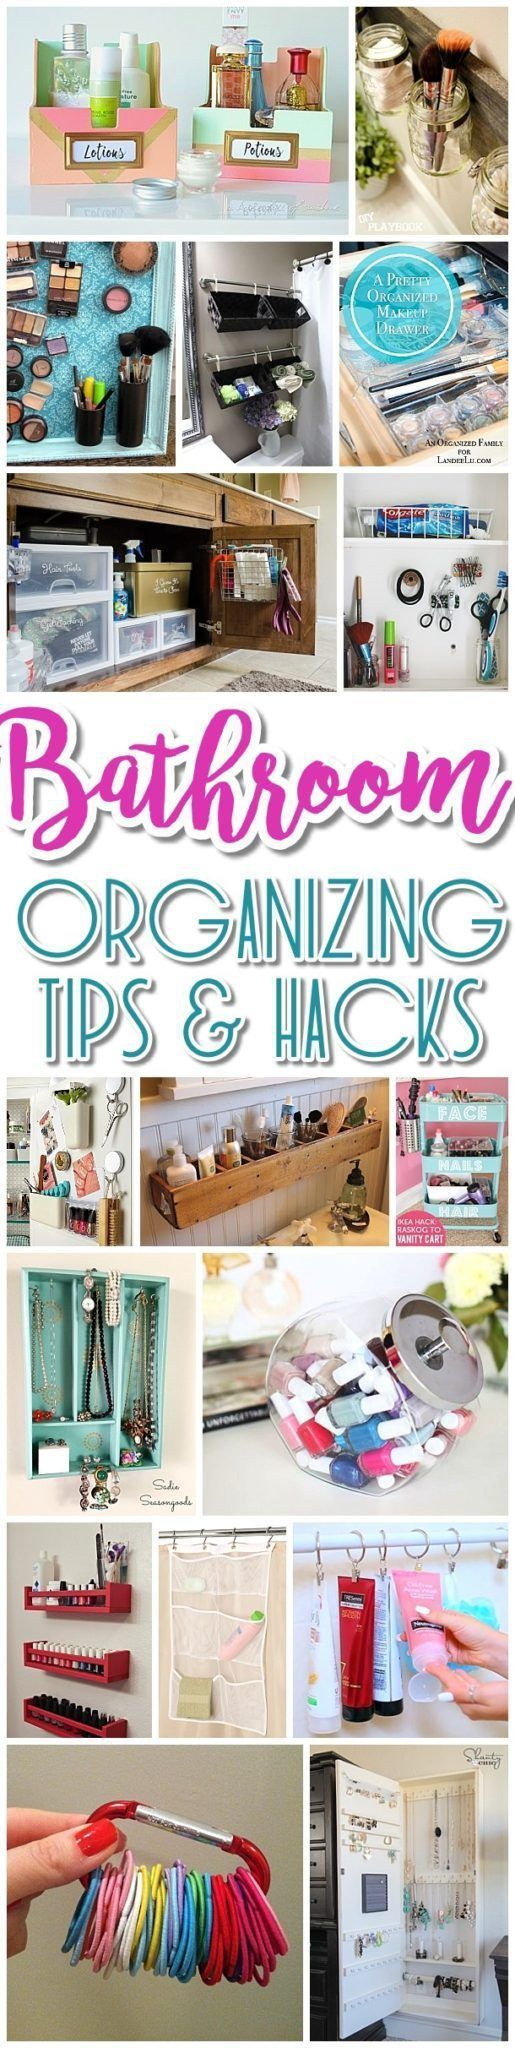 EASY Inexpensive Do it Yourself Ways to Organize and Decorate your Bathroom and Vanity {The BEST DIY Space Saving Projects and Organizing Ideas on a Budget}